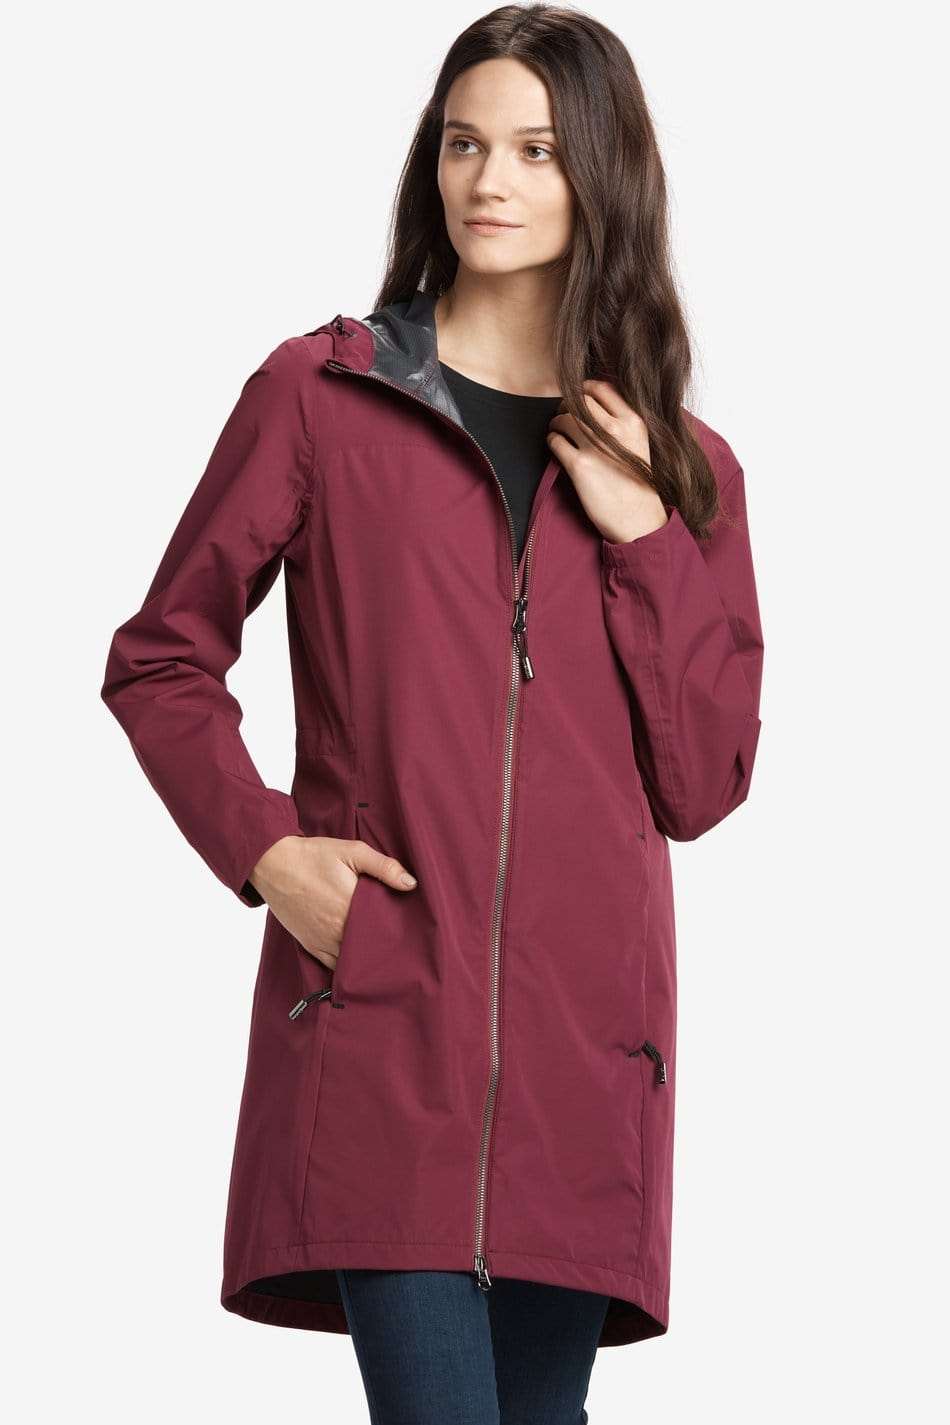 Women's Piper Jacket - NEW